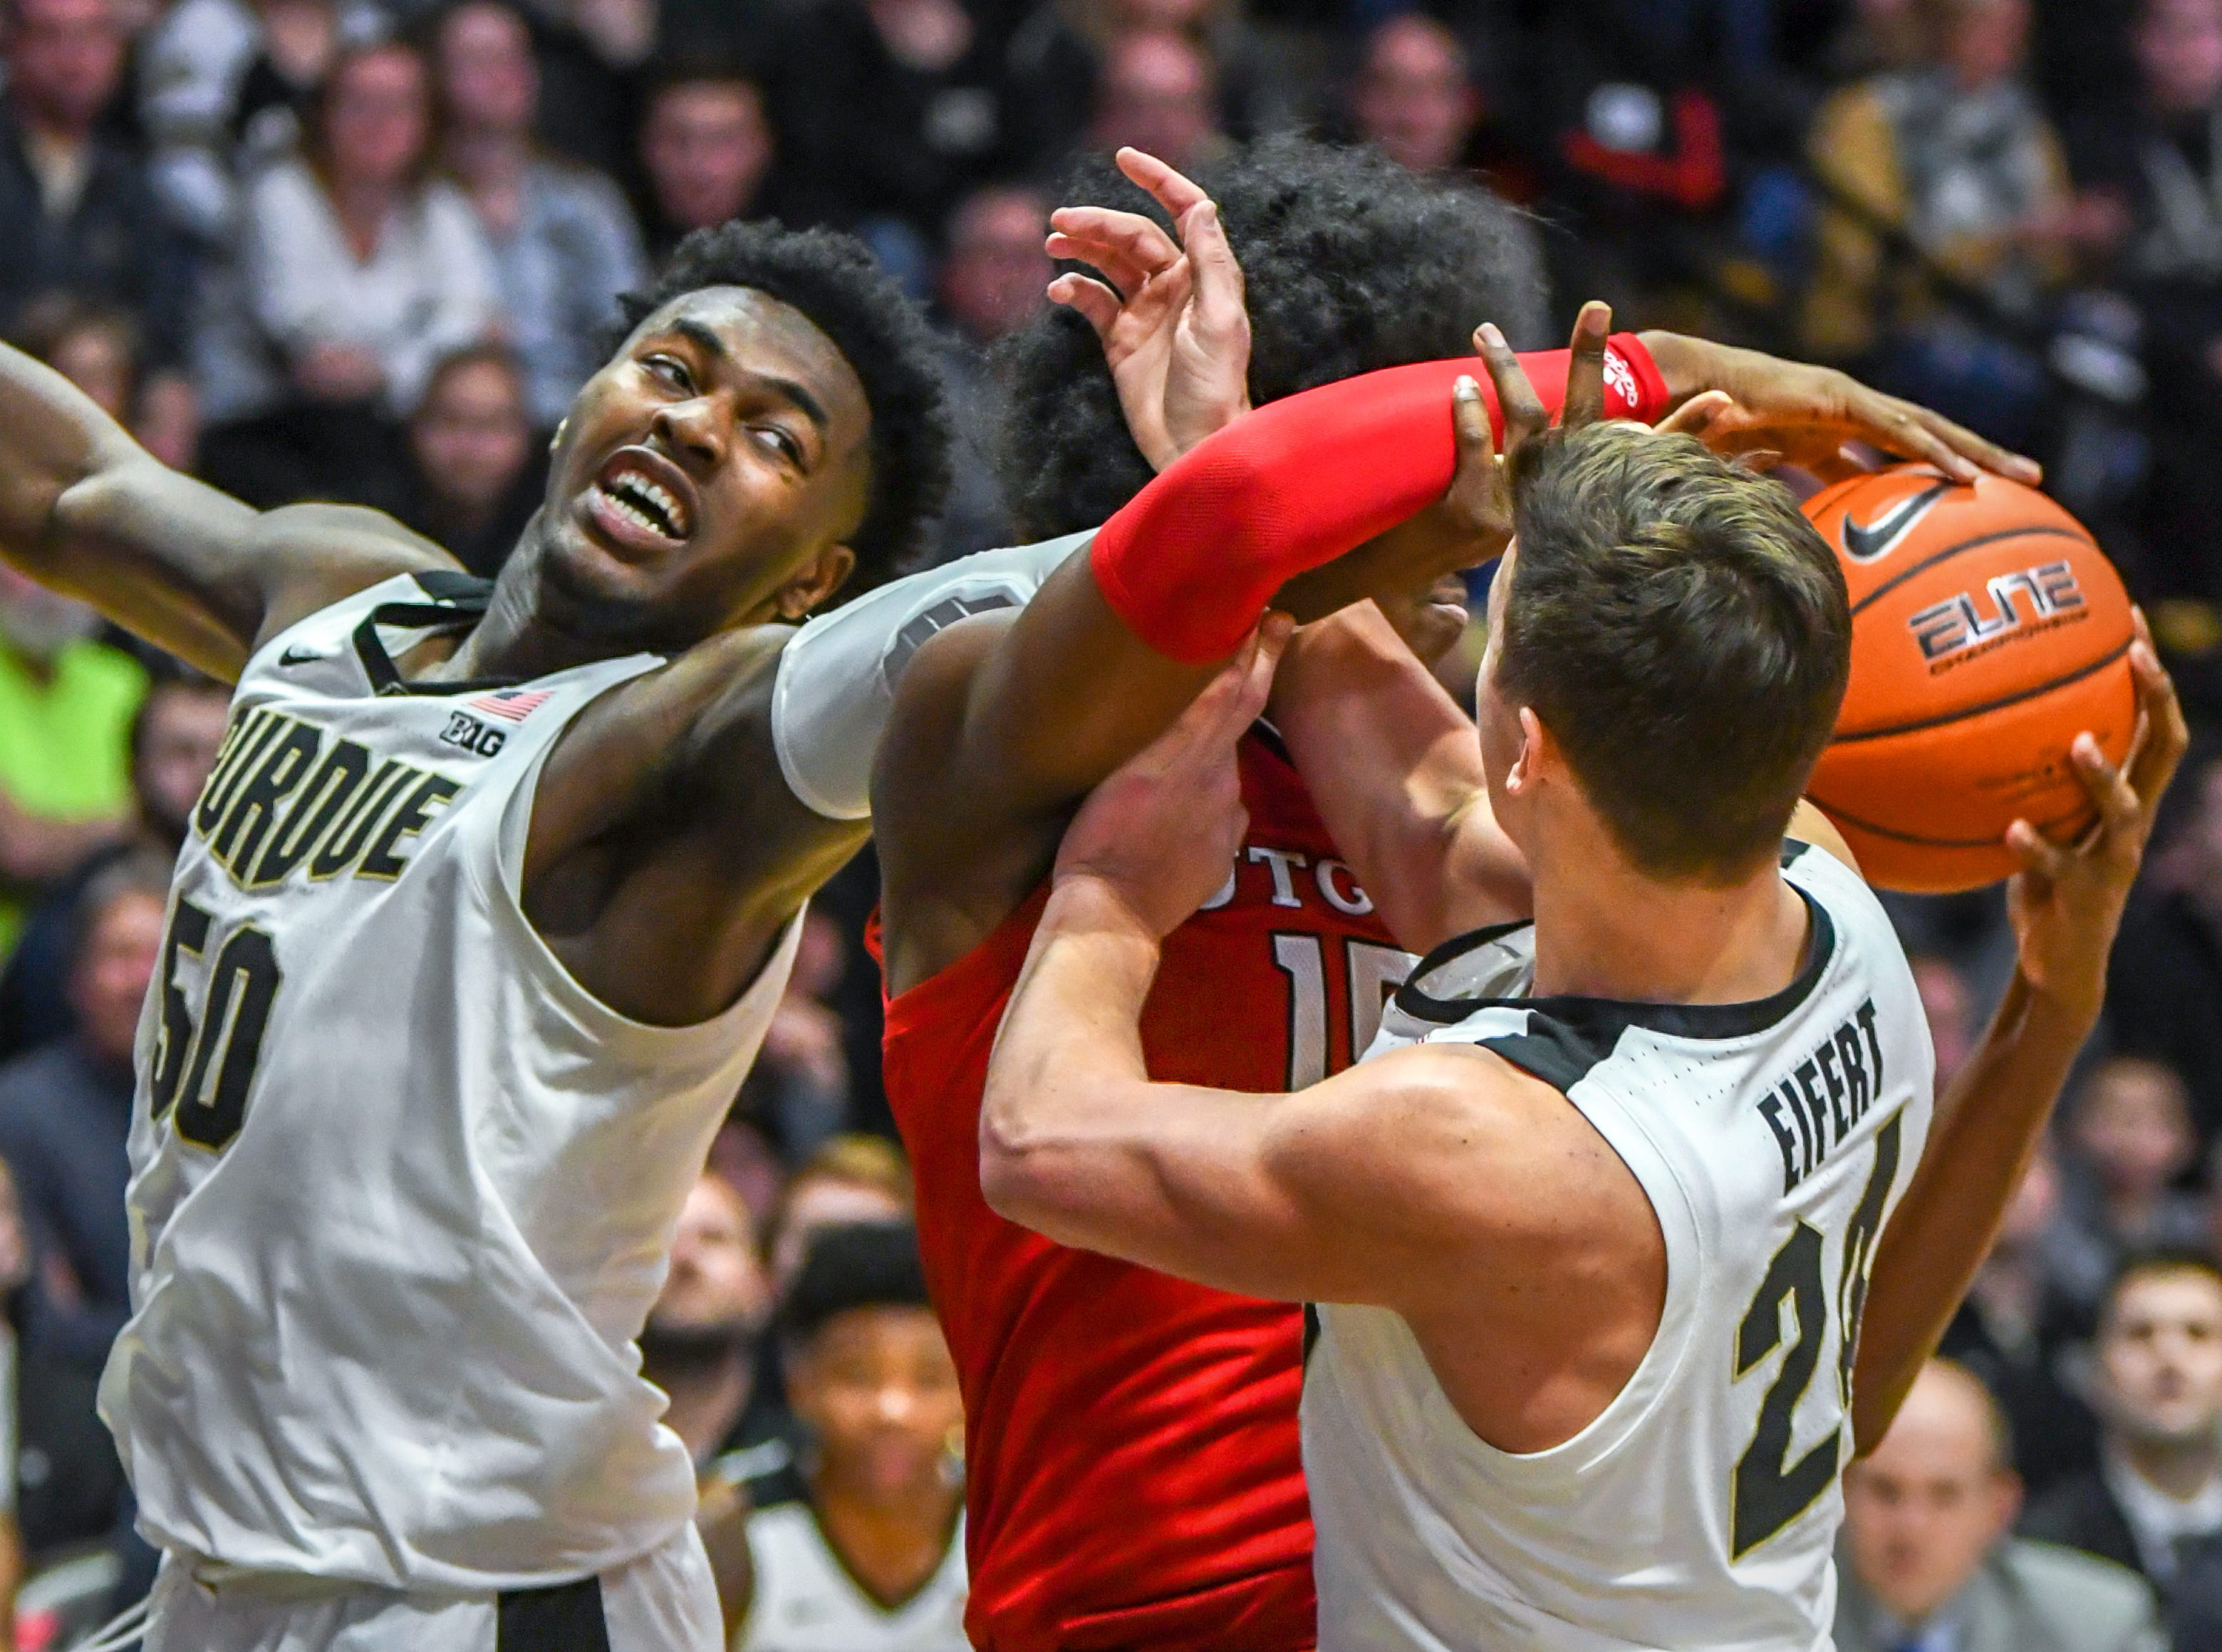 Action from Purdue's 89-54 win over Rutgers at Purdue University in West Lafayette on January 15, 2019. Trevion Williams and Grady Eifert